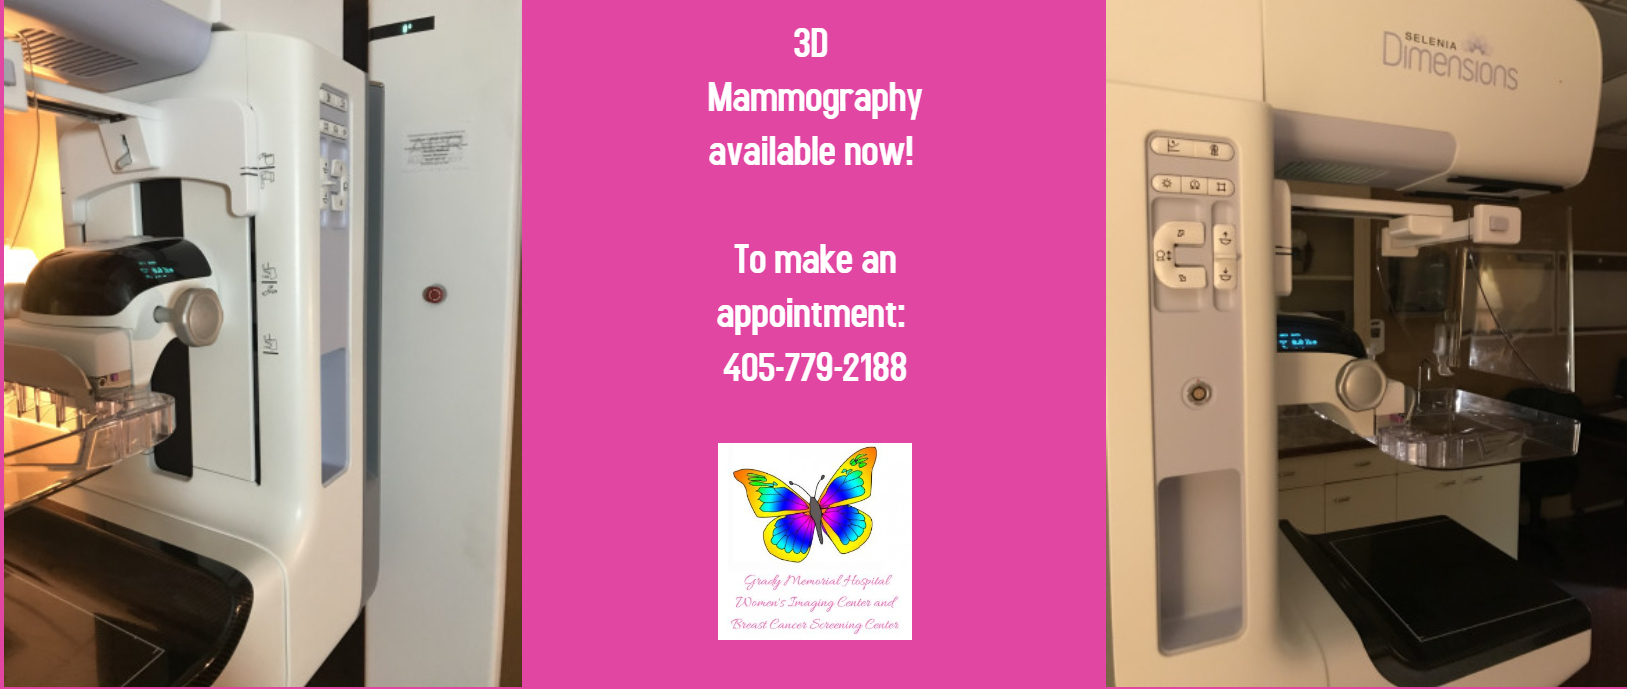 3D Mammography available now! To make an appointment: 405-779-2188